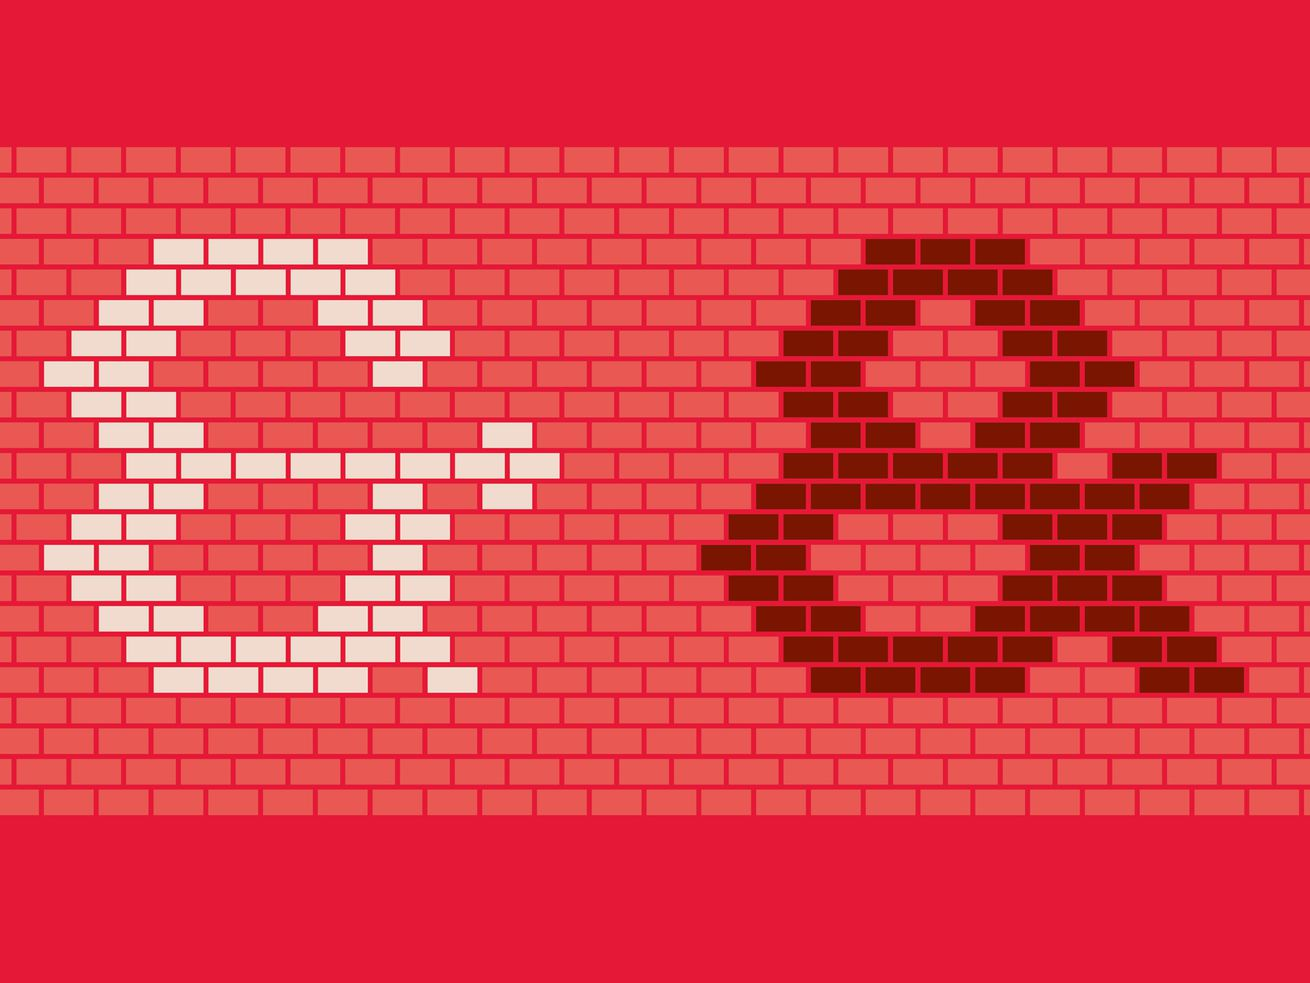 Clever new font is inspired by brick masonry - Architecture